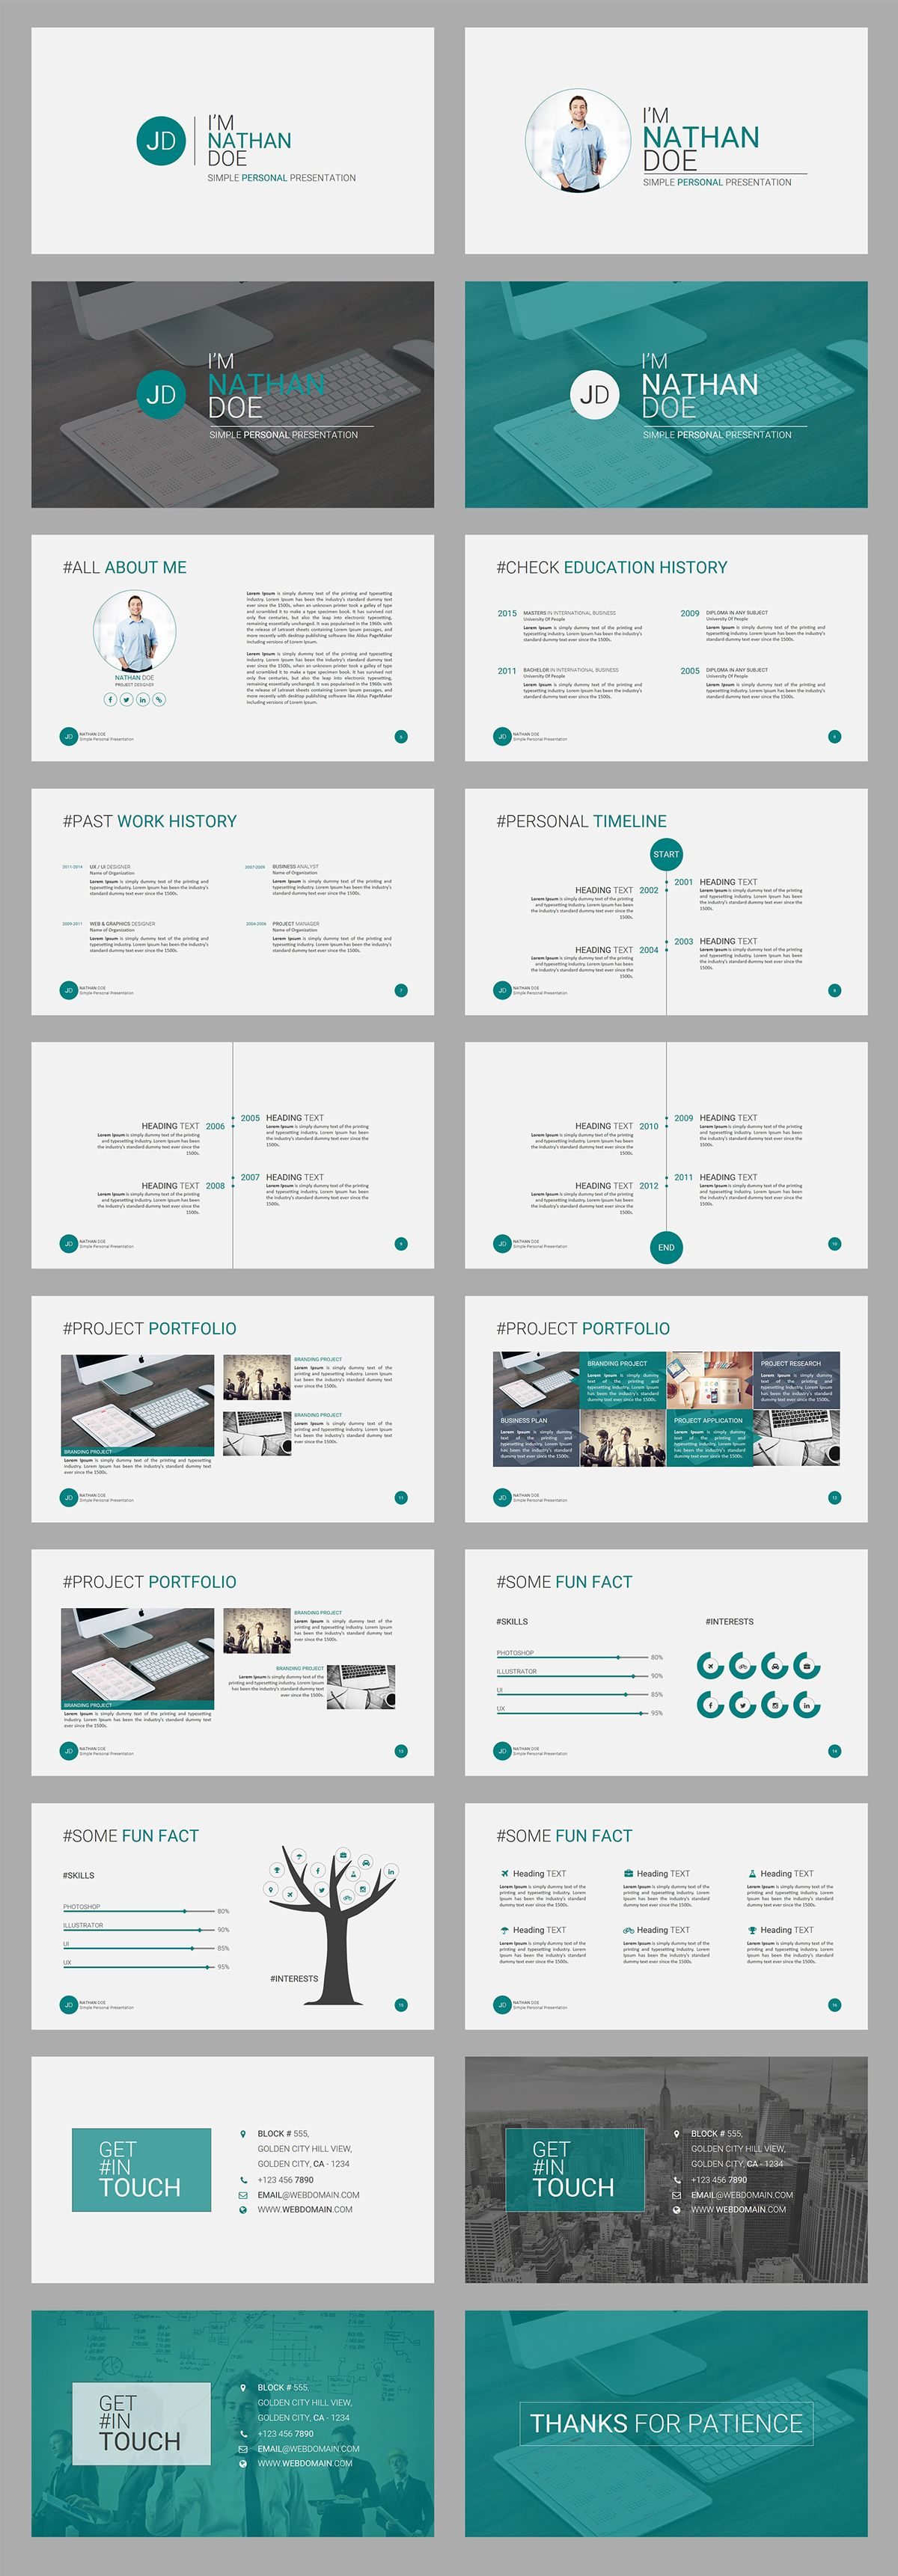 jd personal cvresume powerpoint presentation template is a but for any corporate or business person its a great way to brand yourself in front of